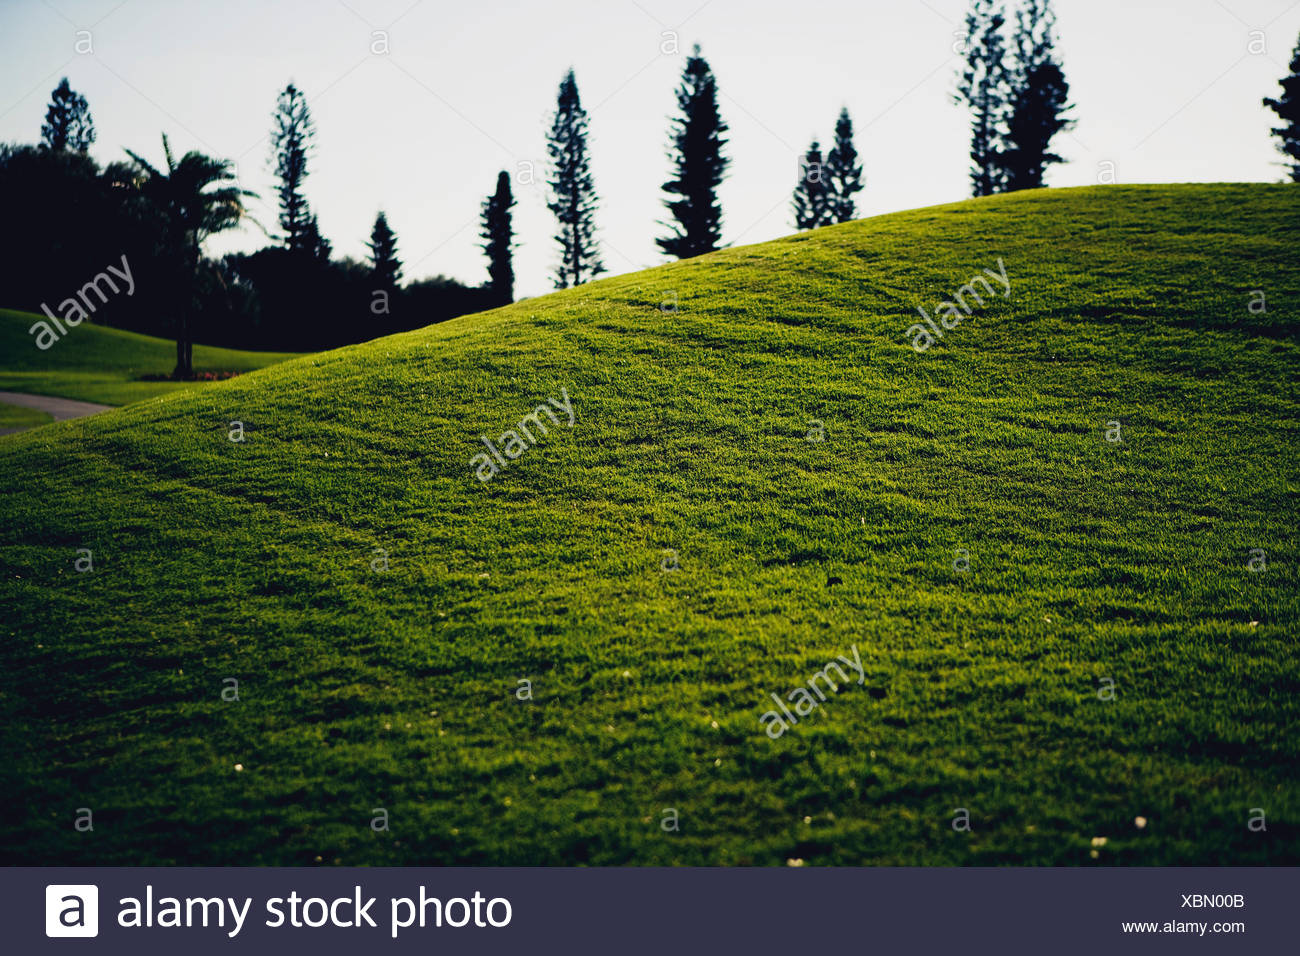 Grass at golf course - Stock Image